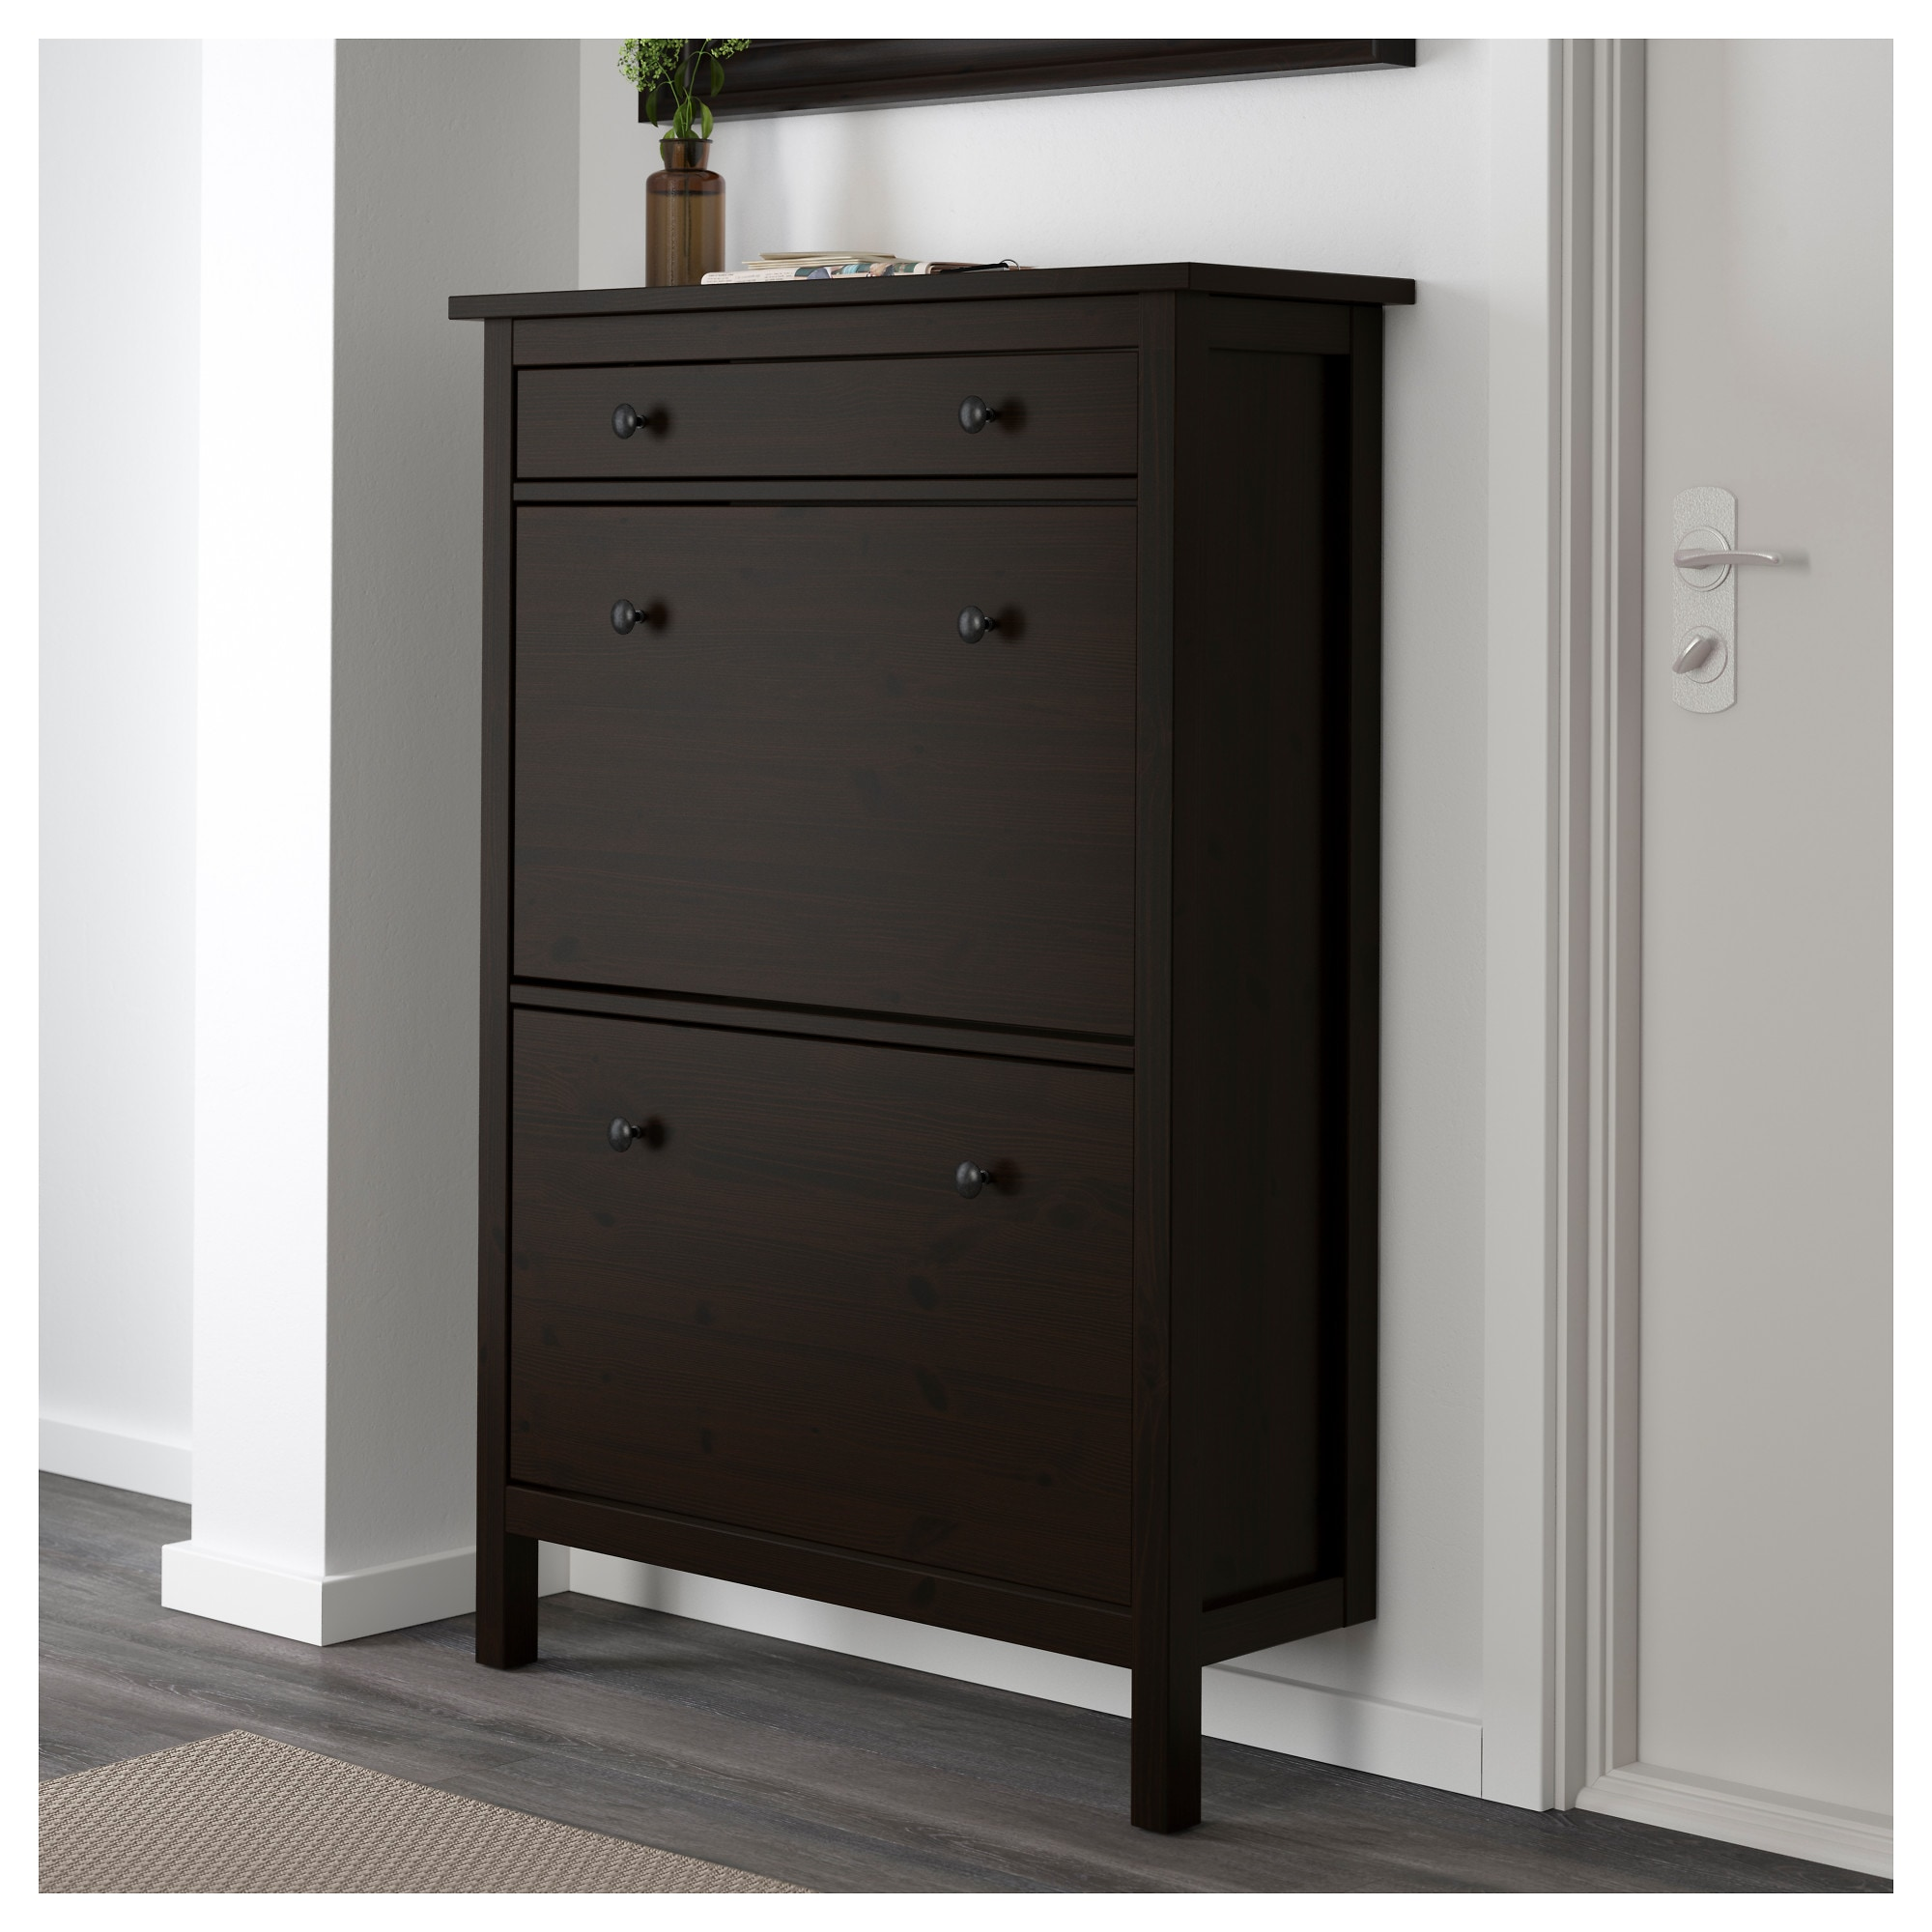 Design Ikea Shoe Storage hemnes shoe cabinet with 2 compartments black brown ikea